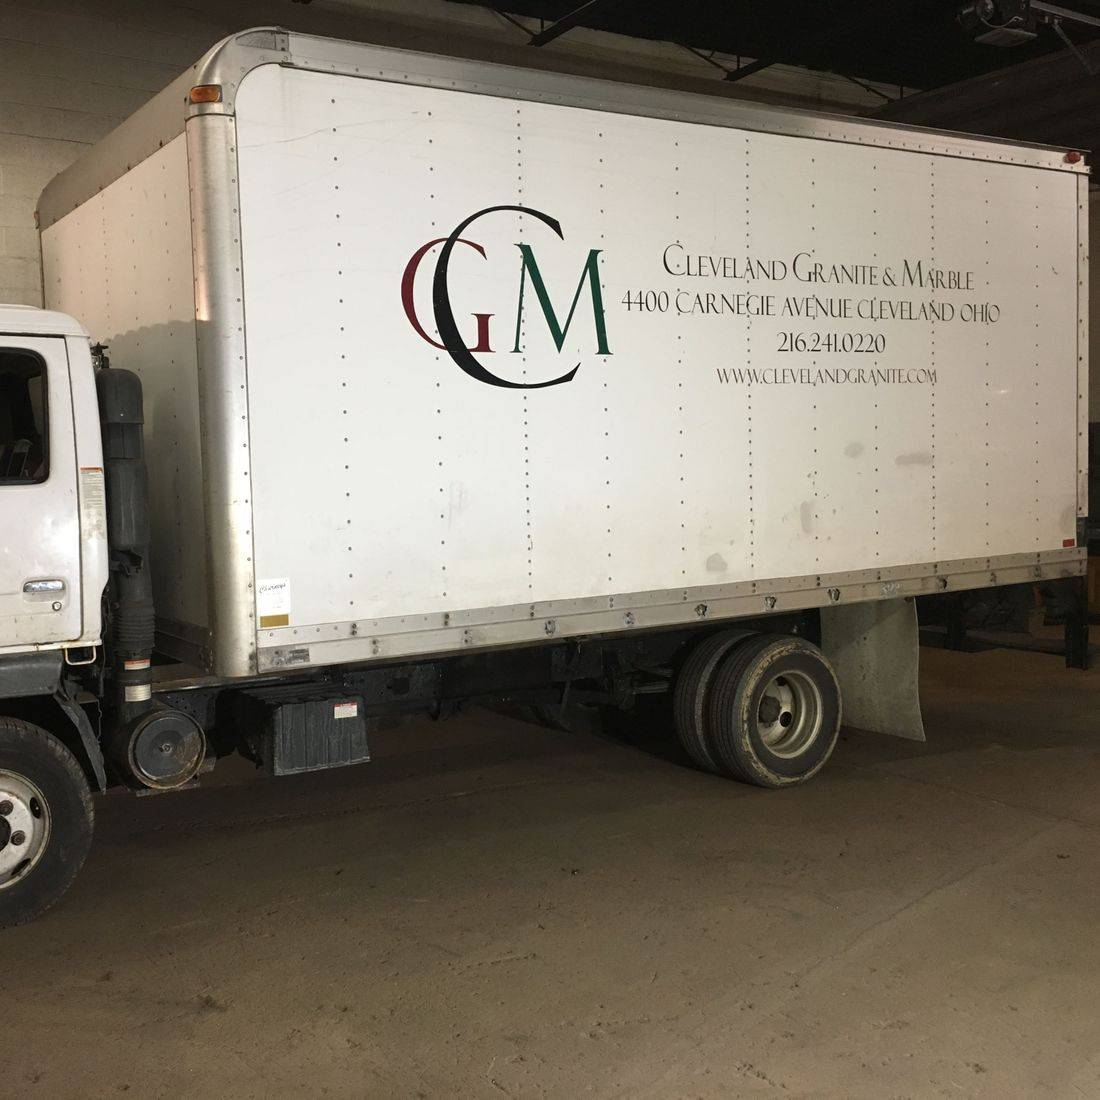 Frato Products - Box Truck Install & Repair Cleveland, OH